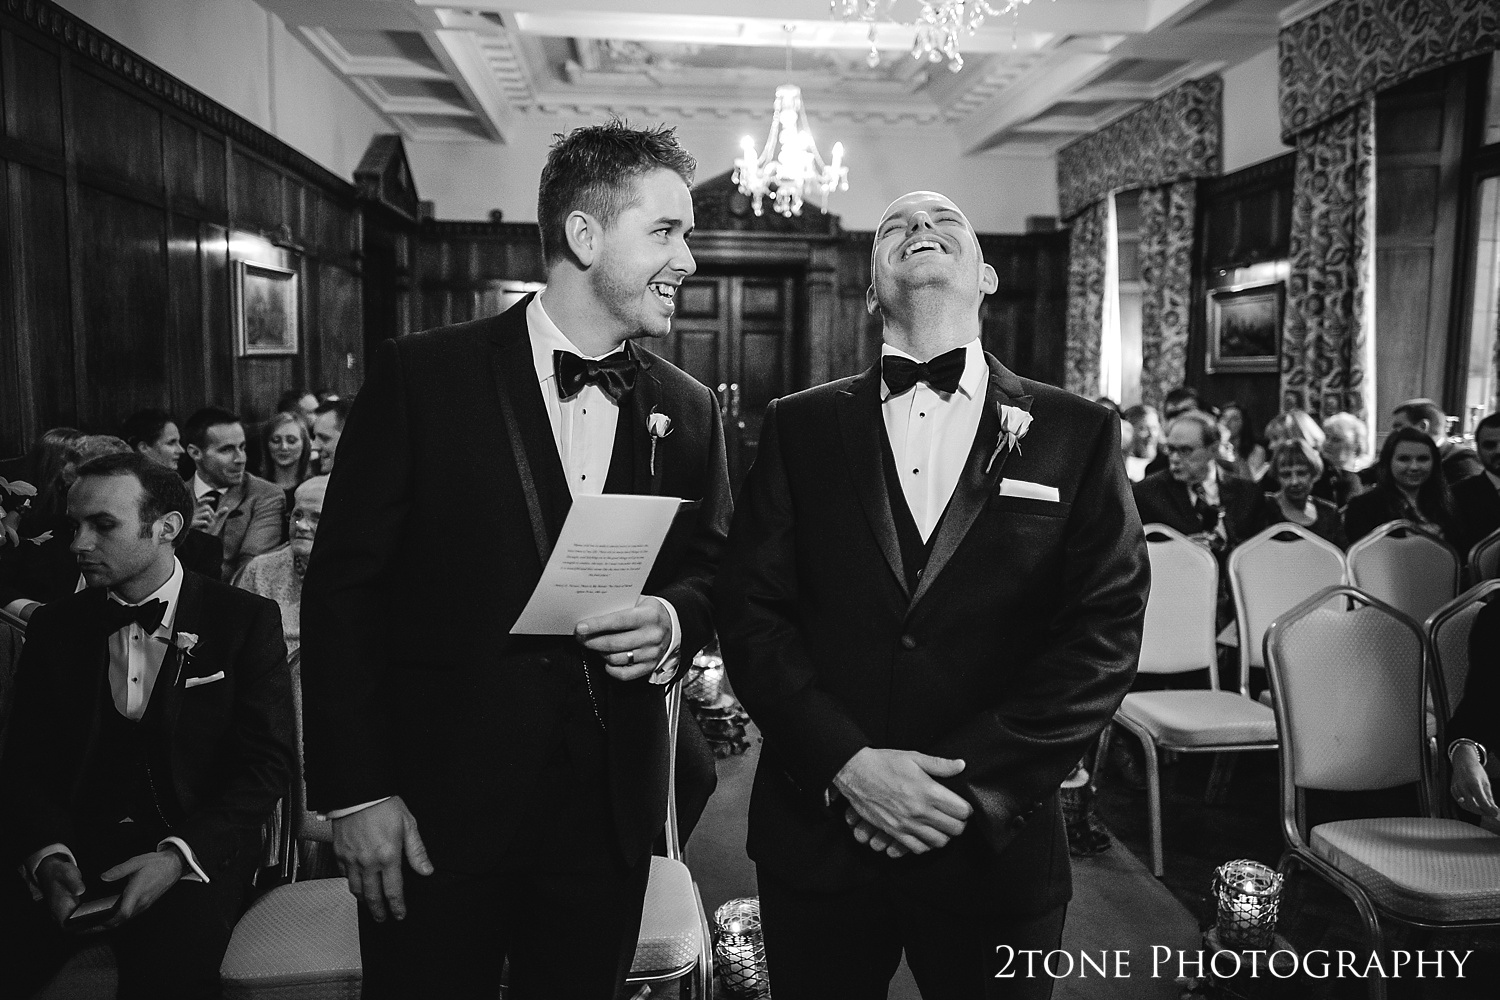 The groom waiting for the ceremony to begin at Ellingham Hall. Winter wedding photography by www.2tonephotography.co.uk